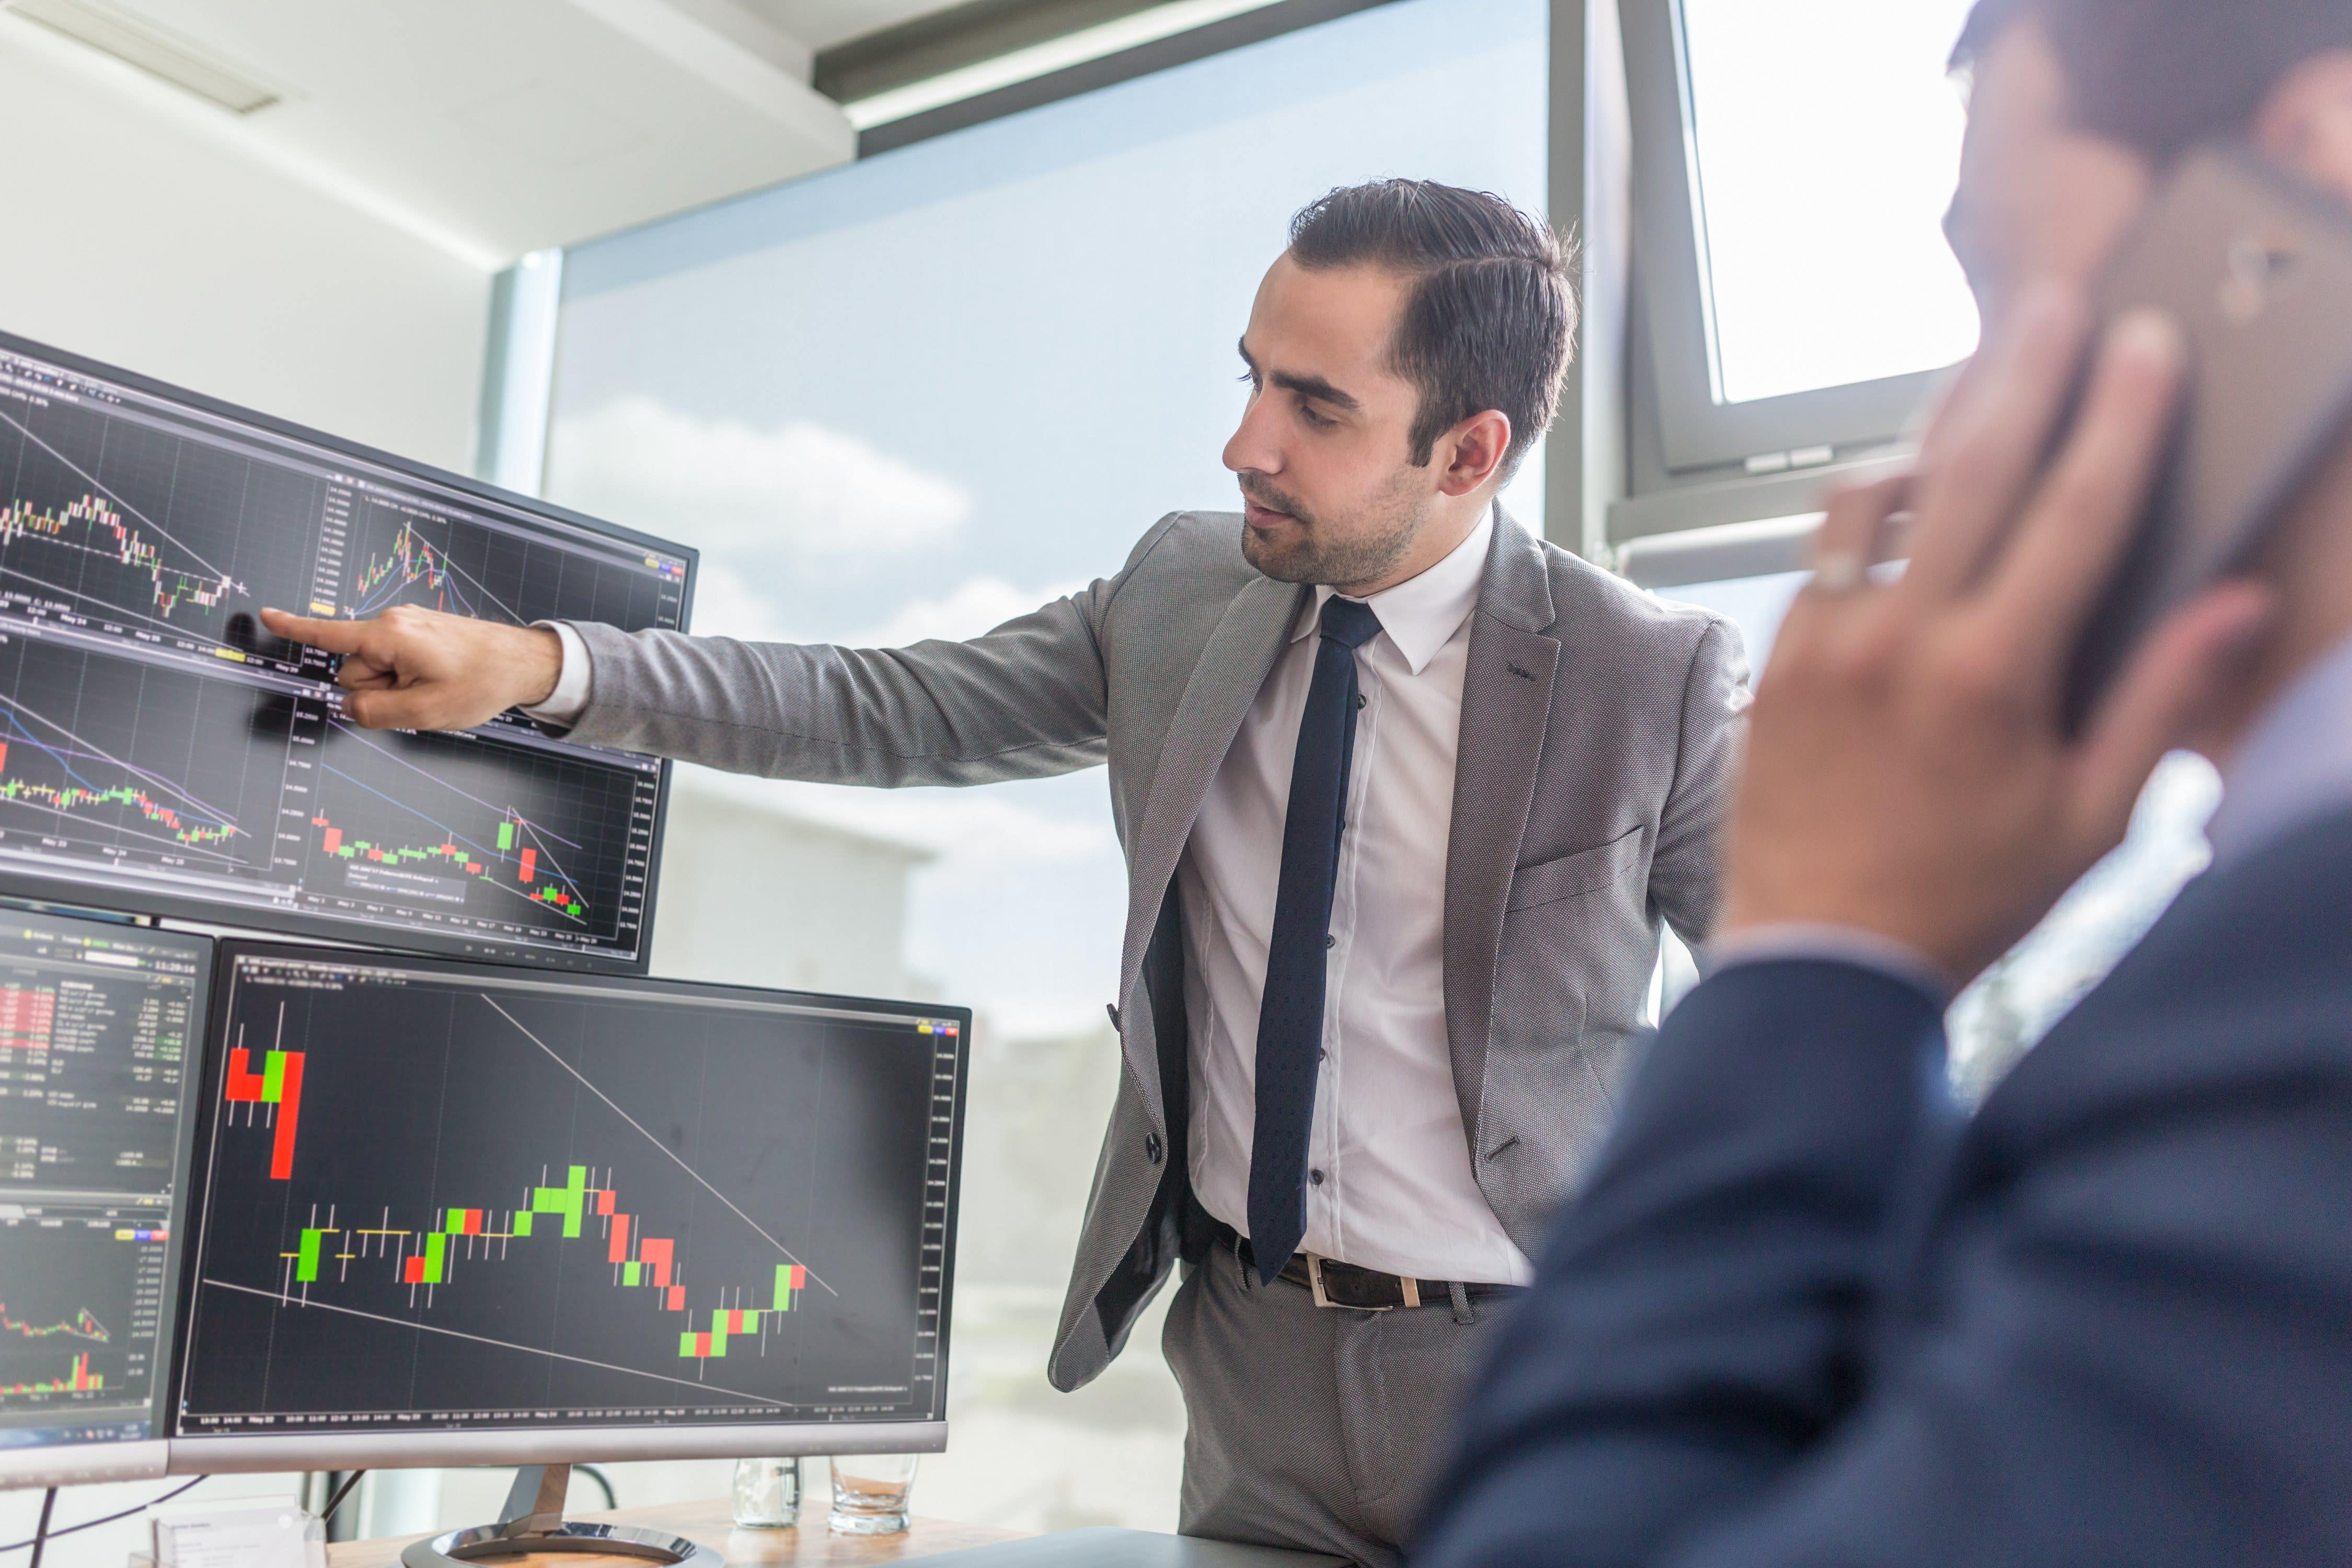 How to Begin a Career in Trading